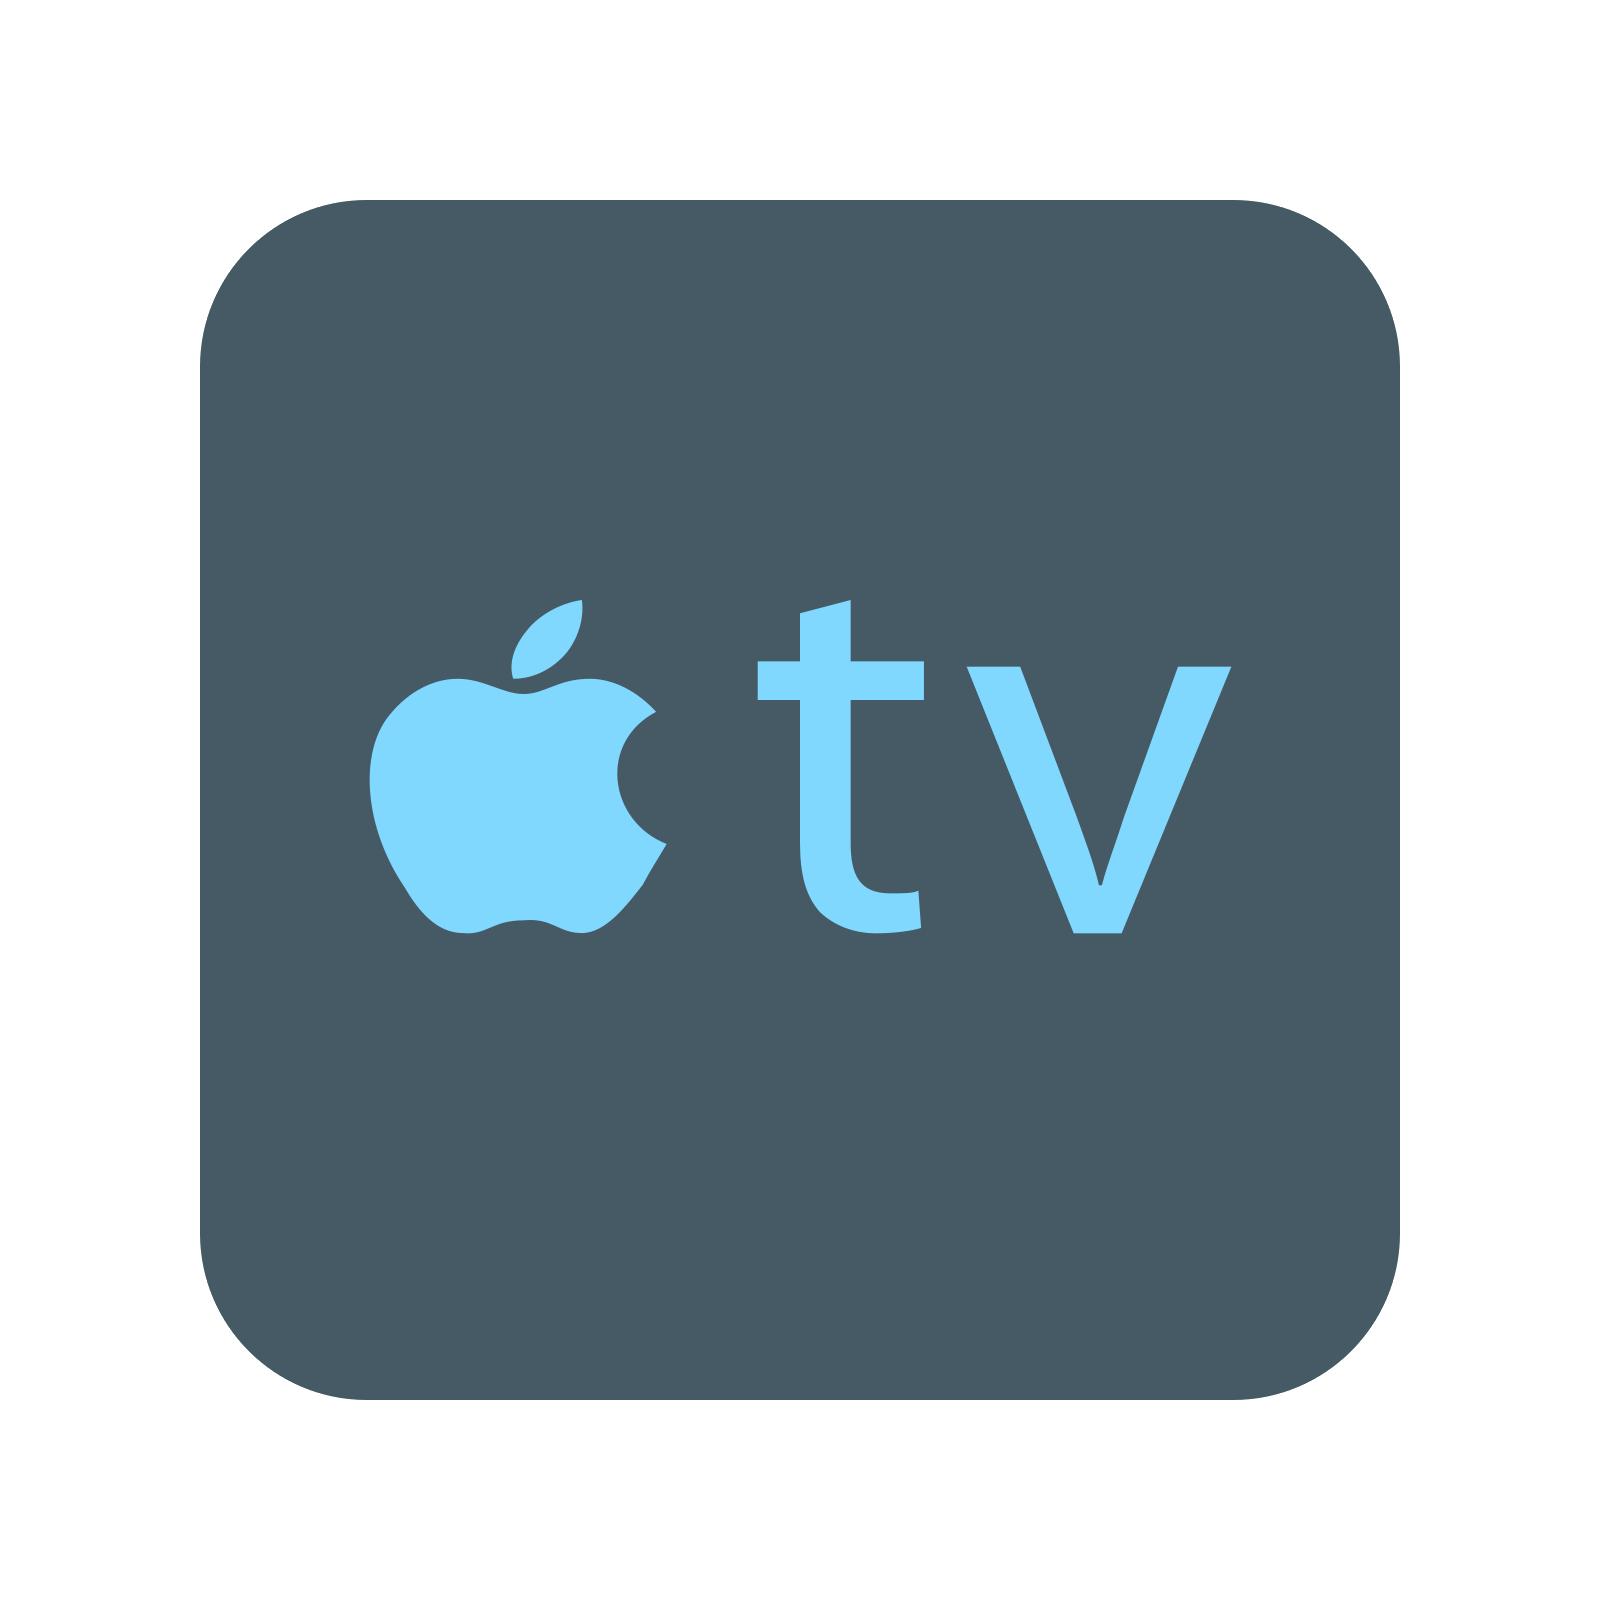 Apple tv icon png. Computer icons television logo